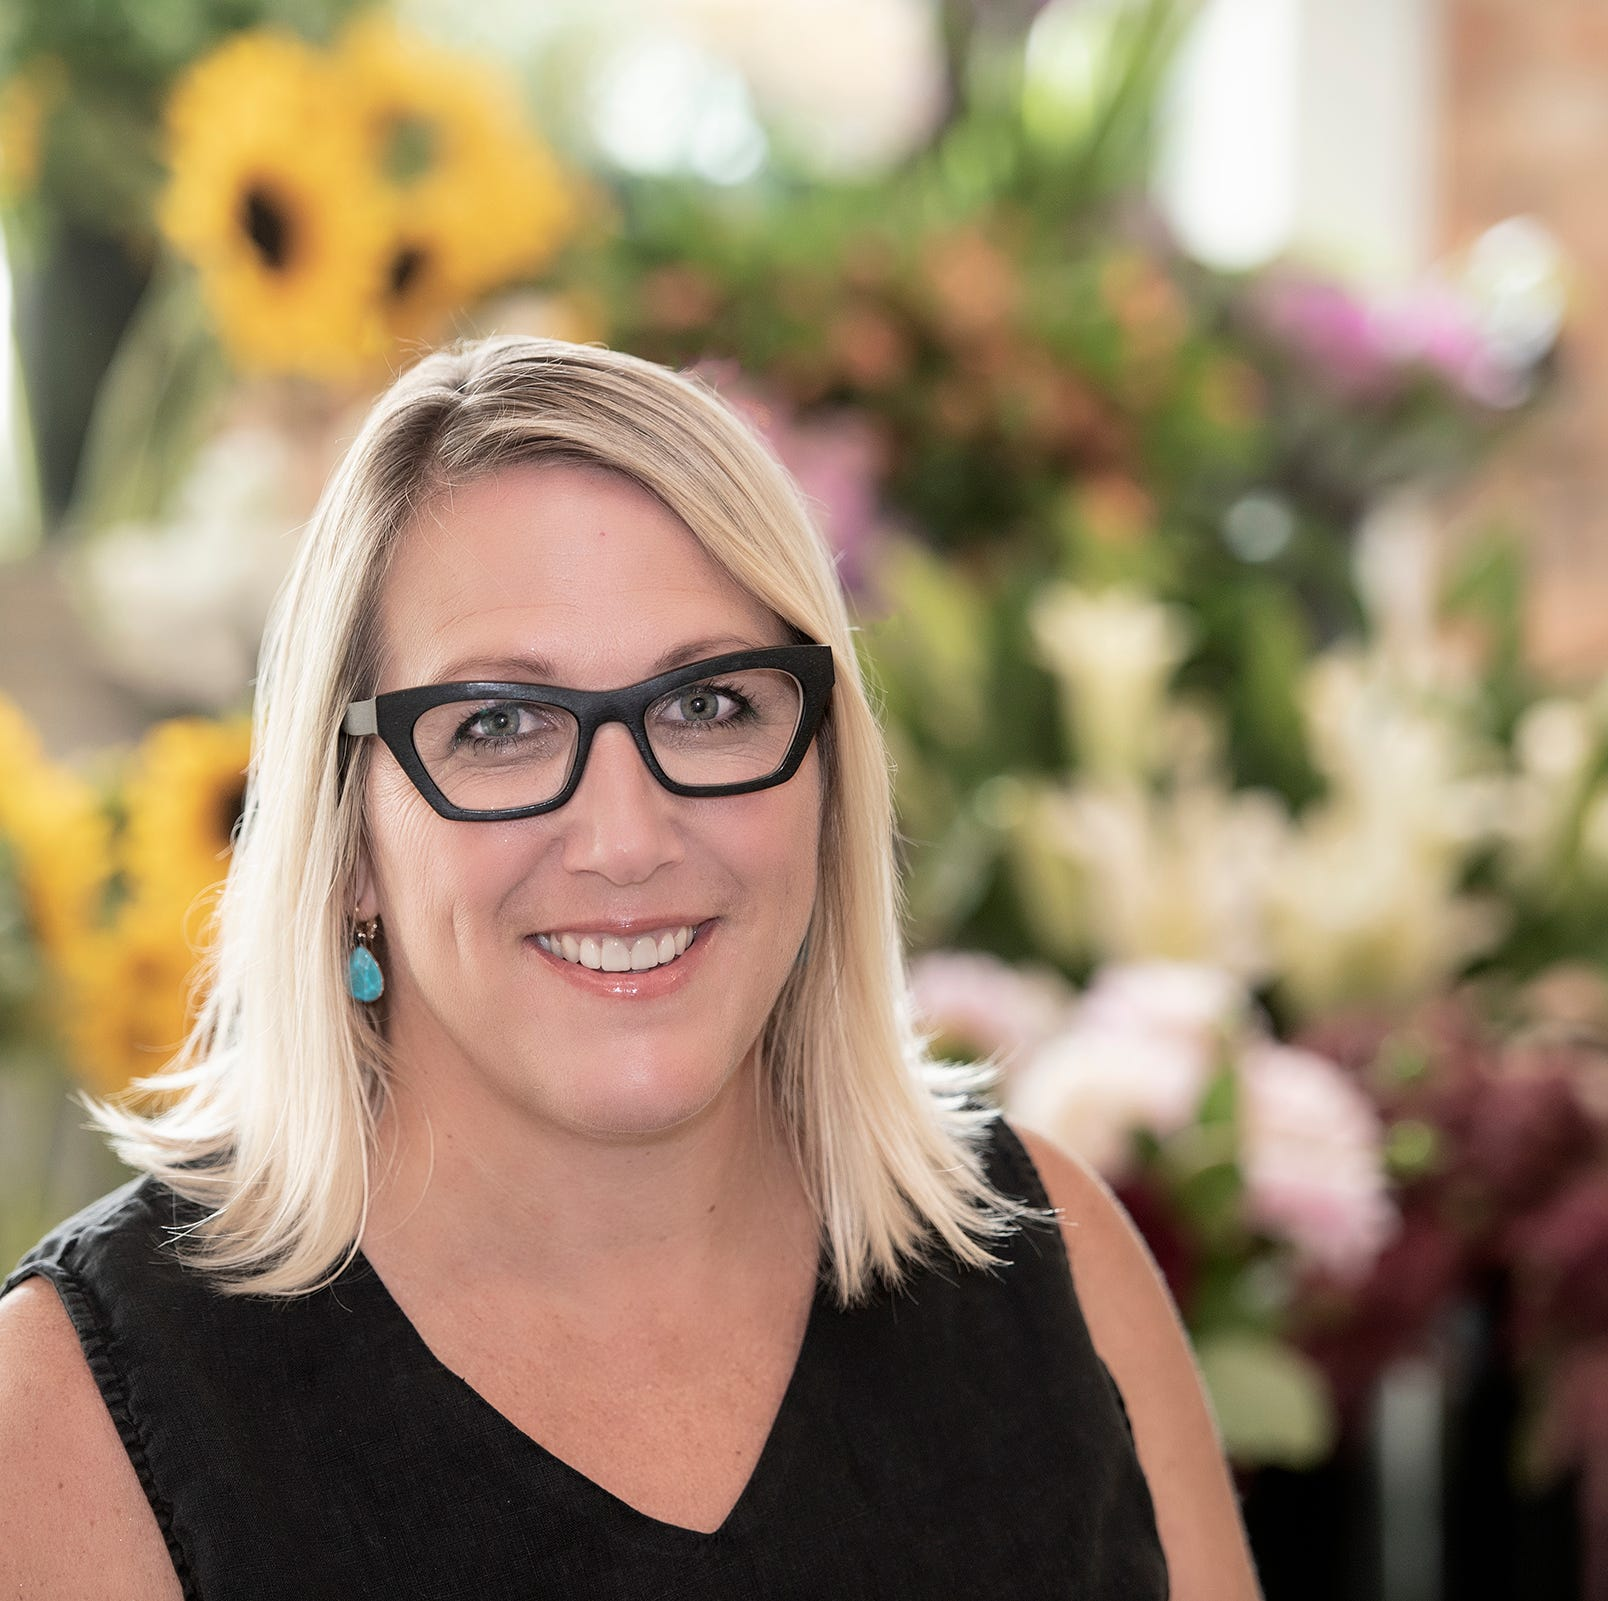 FIORE florist grew business out of grit and hustle